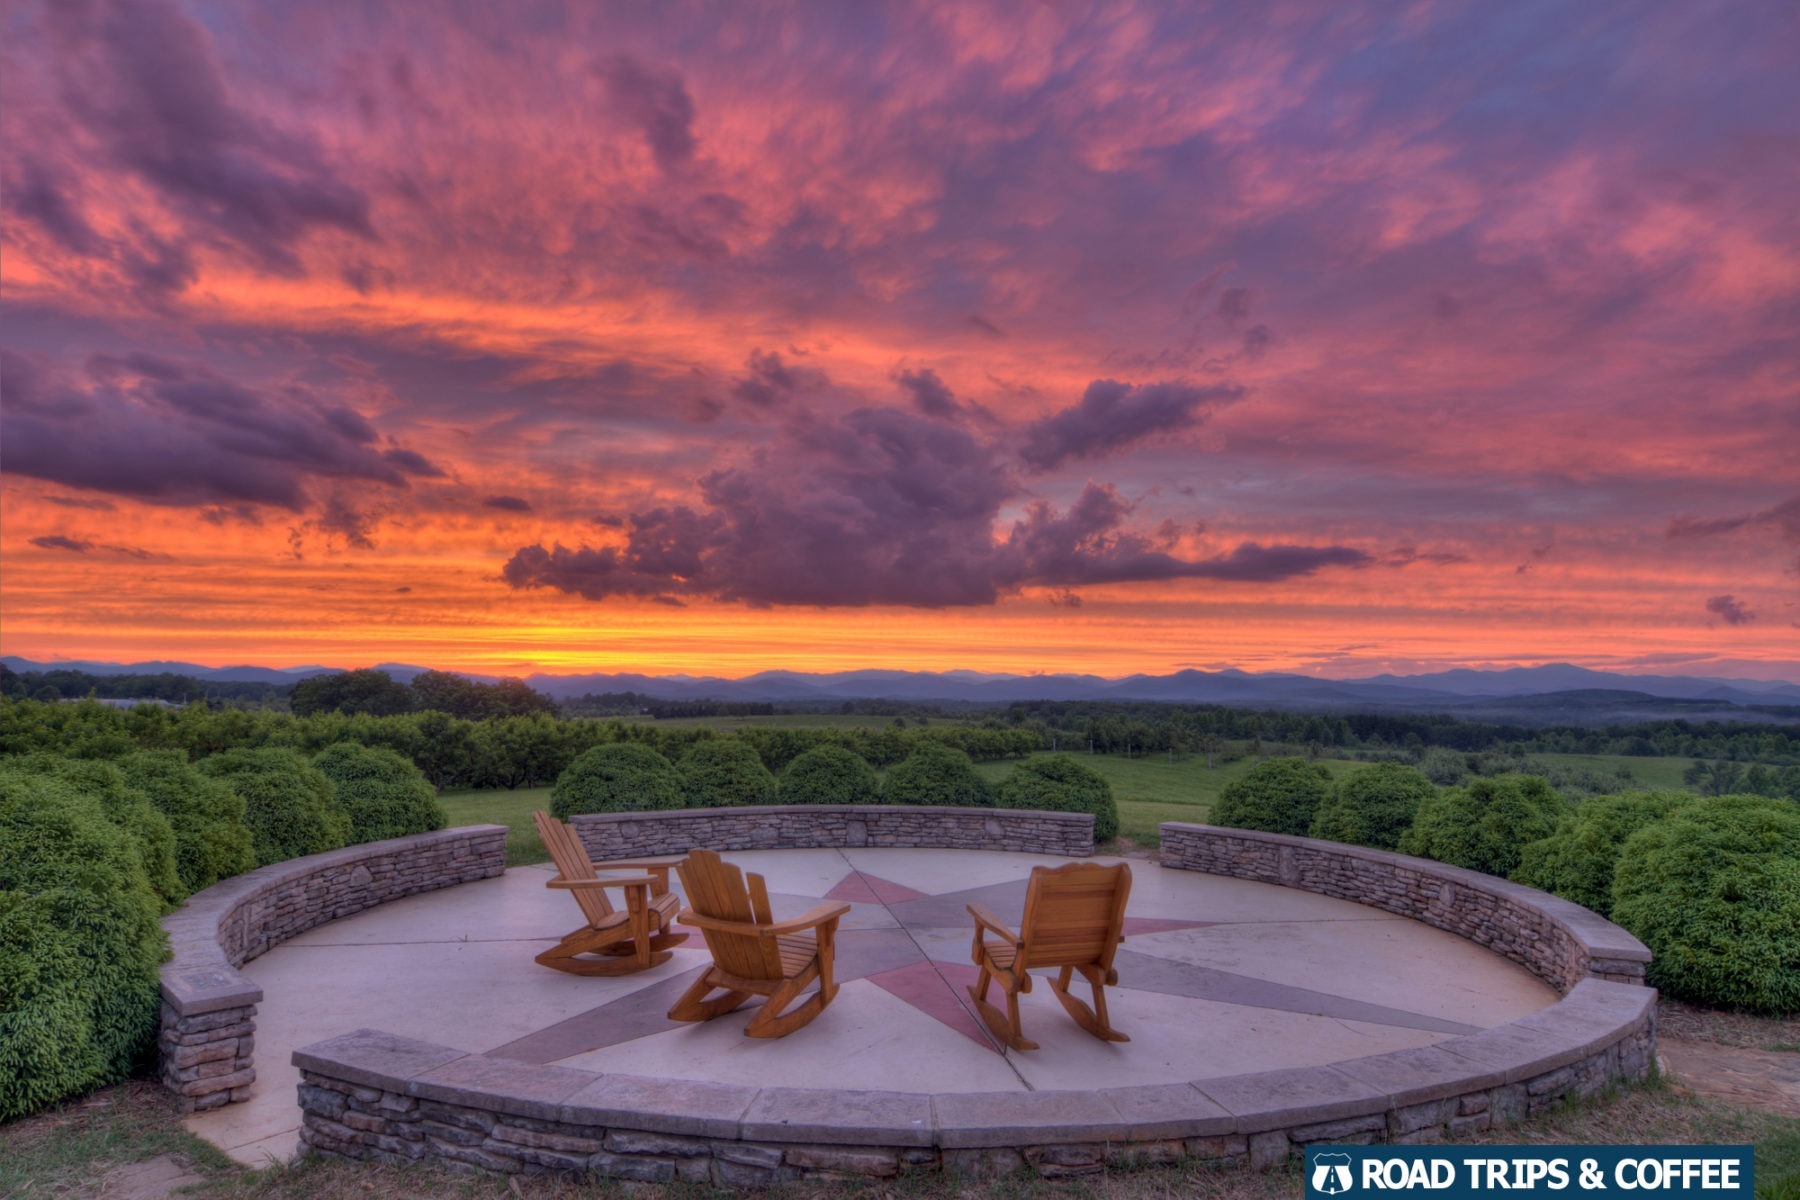 A brilliant orange sunset colors the sky over a trio of wooden rocking chairs on a circular stone patio at Chattooga Belle Farm in South Carolina.